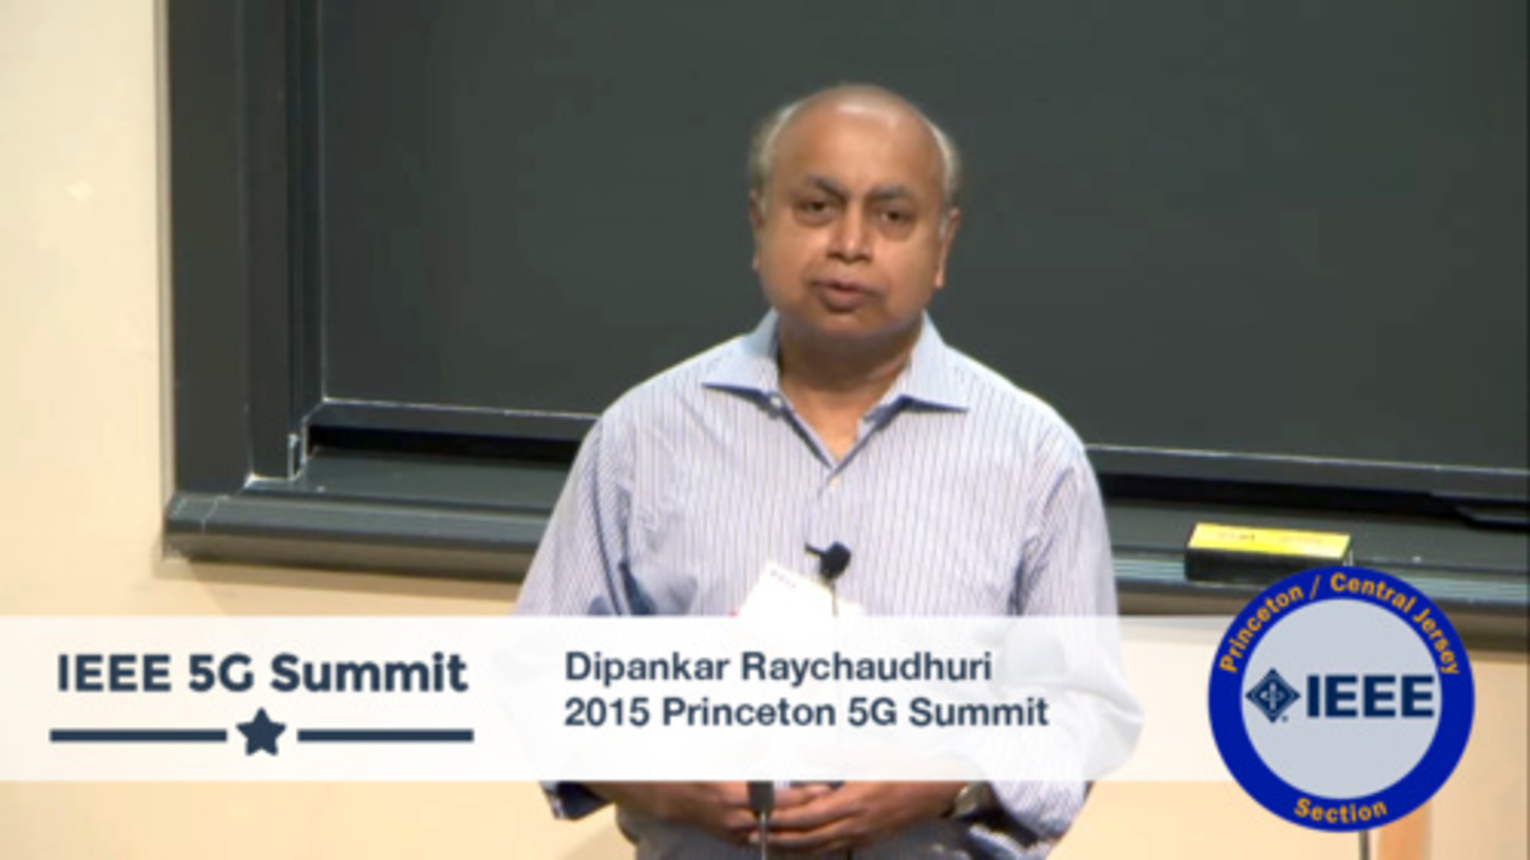 Princeton 5G Summit - Dipankar Raychaudhuri Keynote - Revolutionary Architecture - Not the Victorian Kind